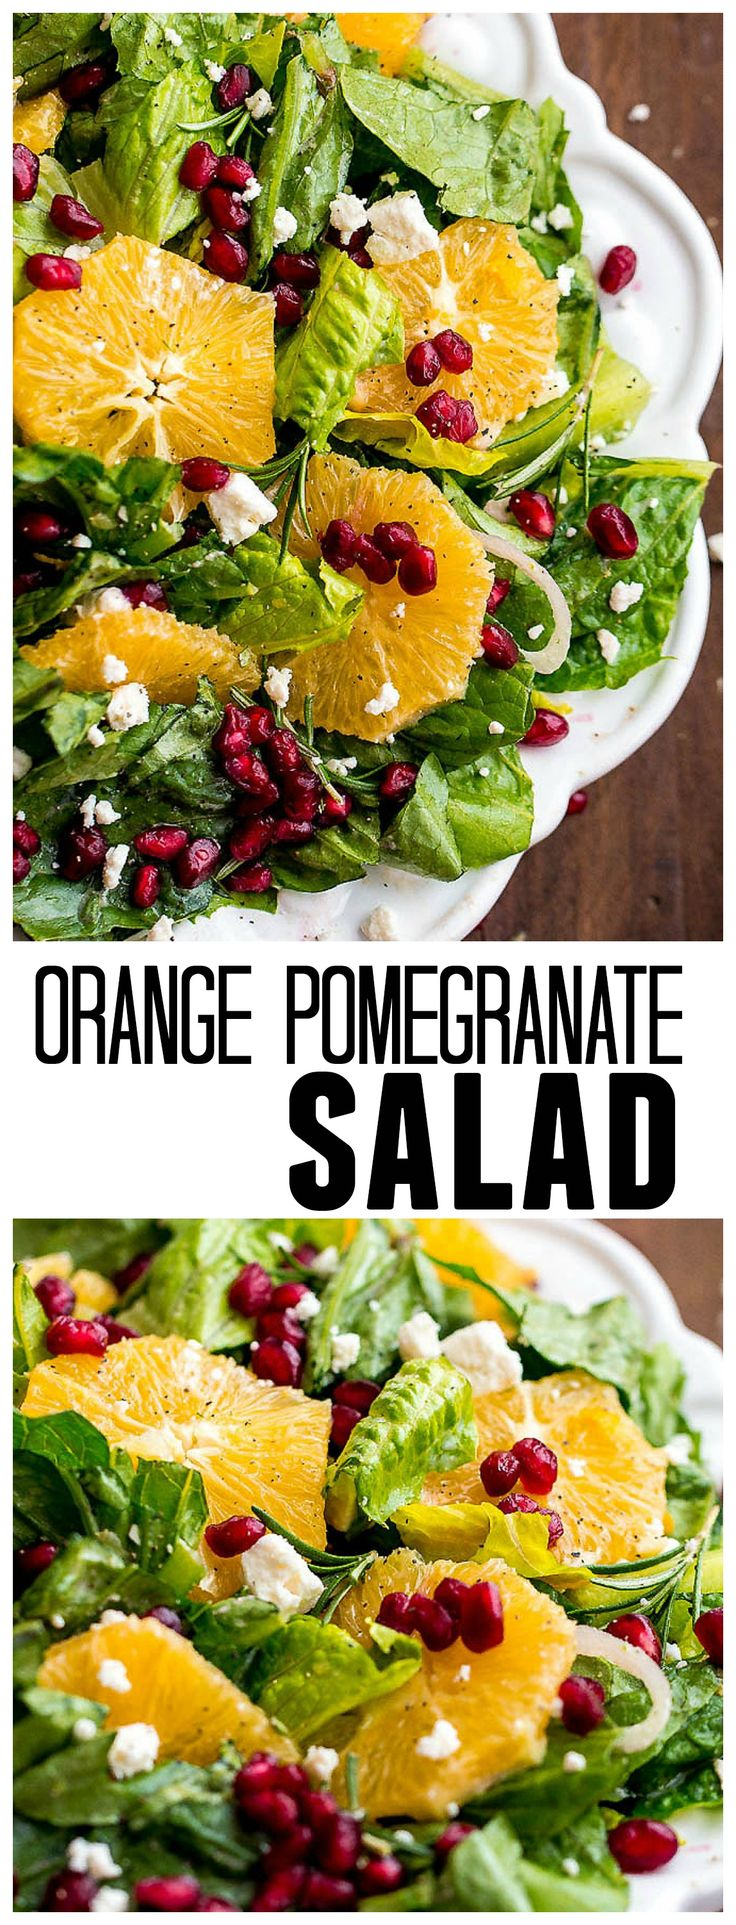 This Orange Pomegranate Salad is incredible with fresh oranges and pomegranates topped with an amazing zesty orange buttermilk dressing!